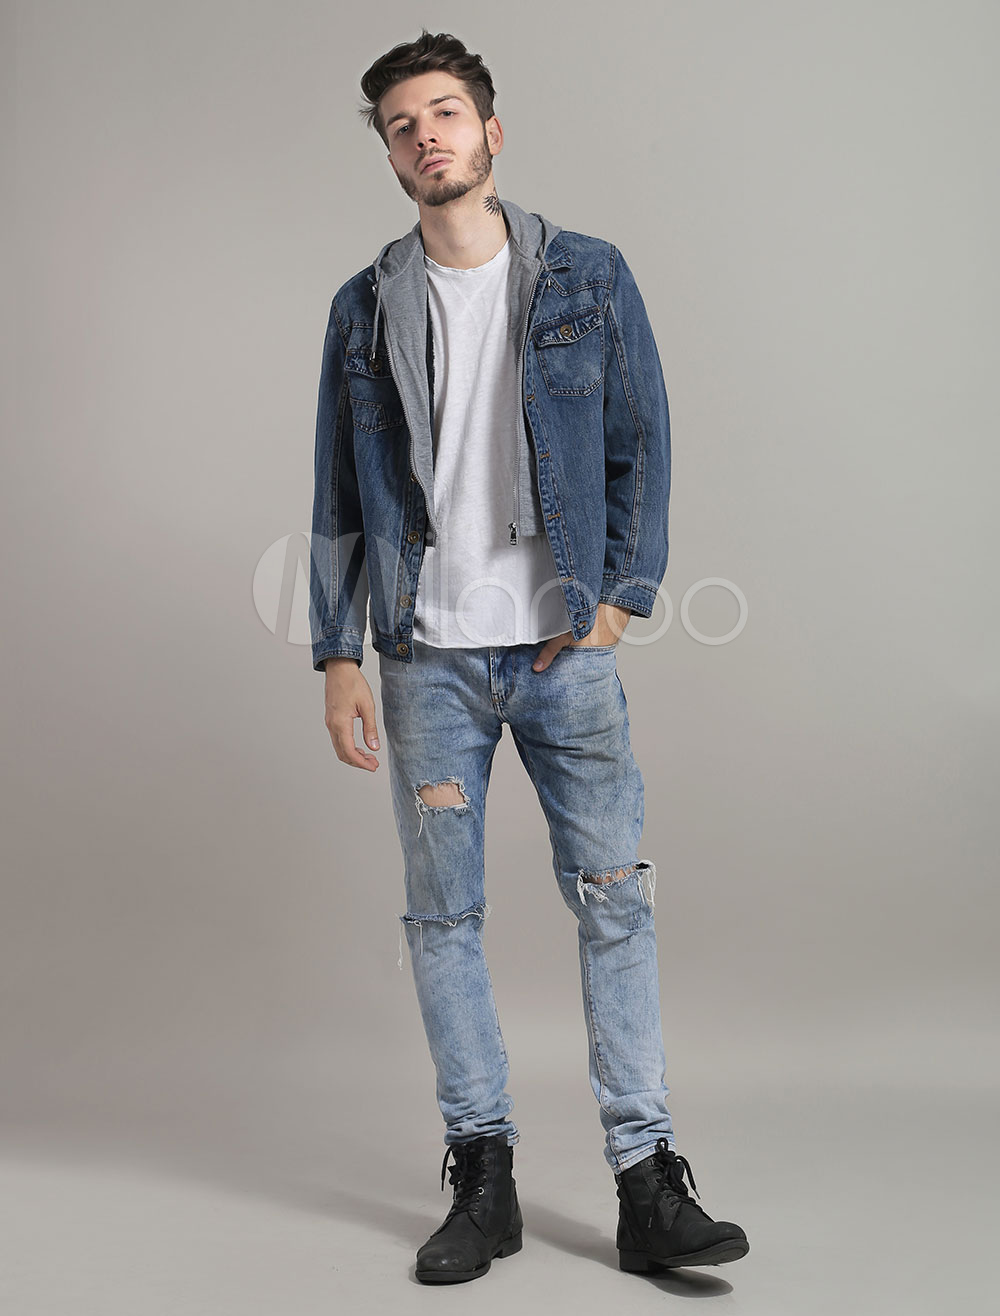 Men Denim Jacket Hooded Short Jacket Patchwork Washed Jean